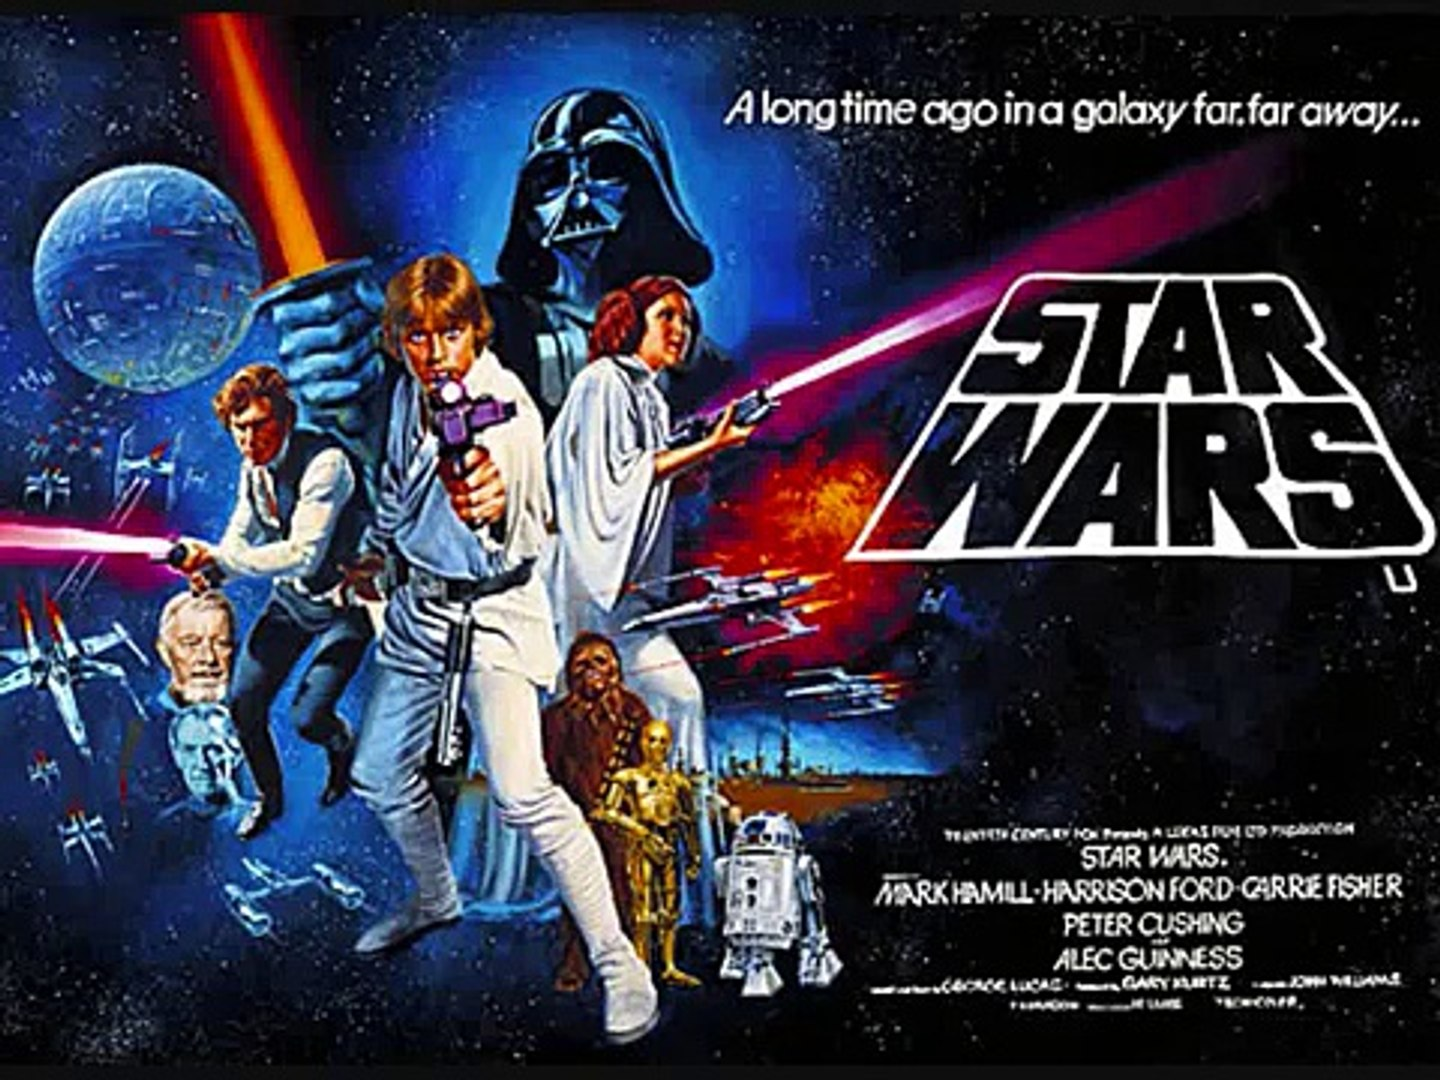 Cantina Band 2 12 Star Wars Episode Iv A New Hope Soundtrack Video Dailymotion